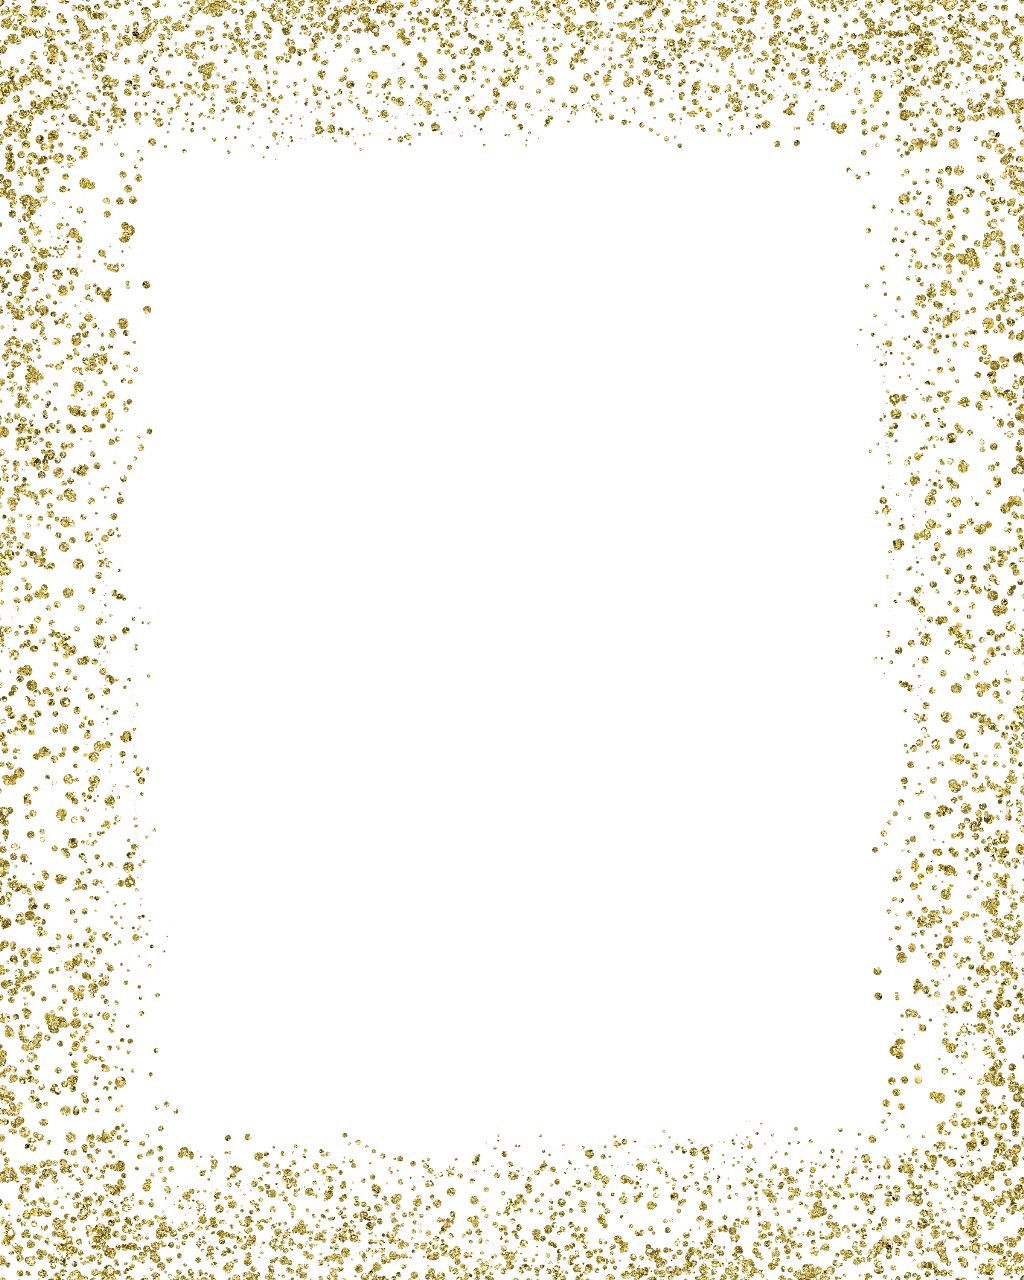 for free download. Gold glitter frame png